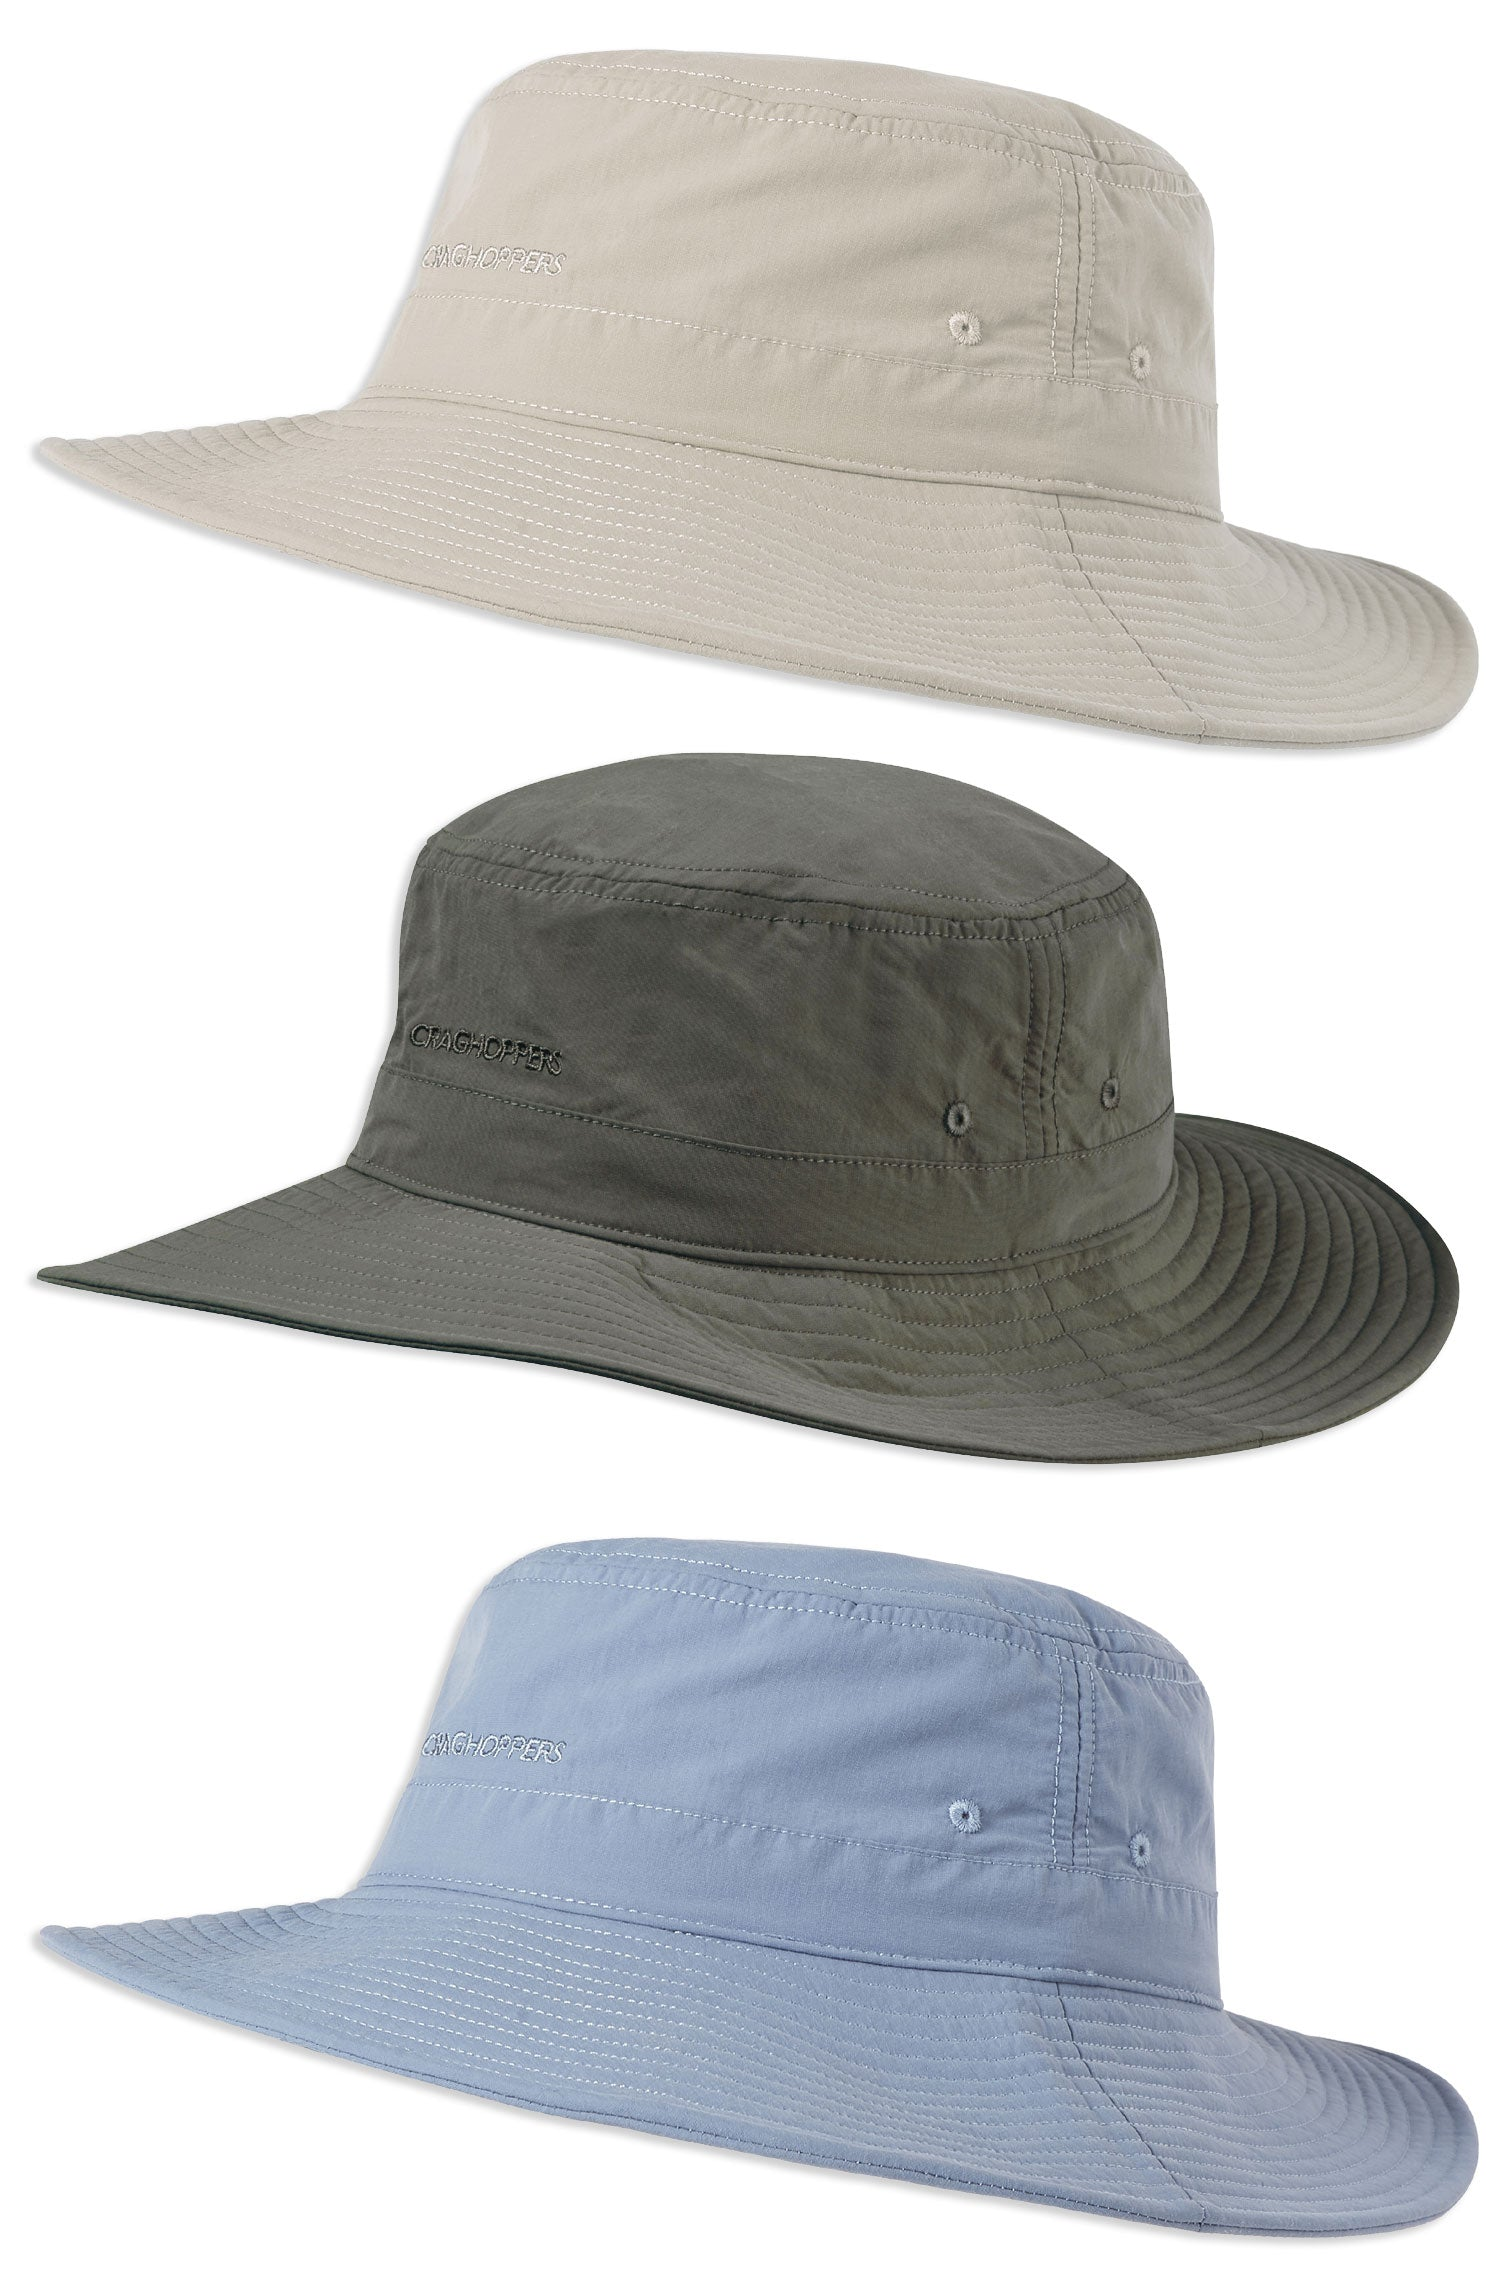 365d15282 Craghoppers NosiLife Sun Hat – Hollands Country Clothing